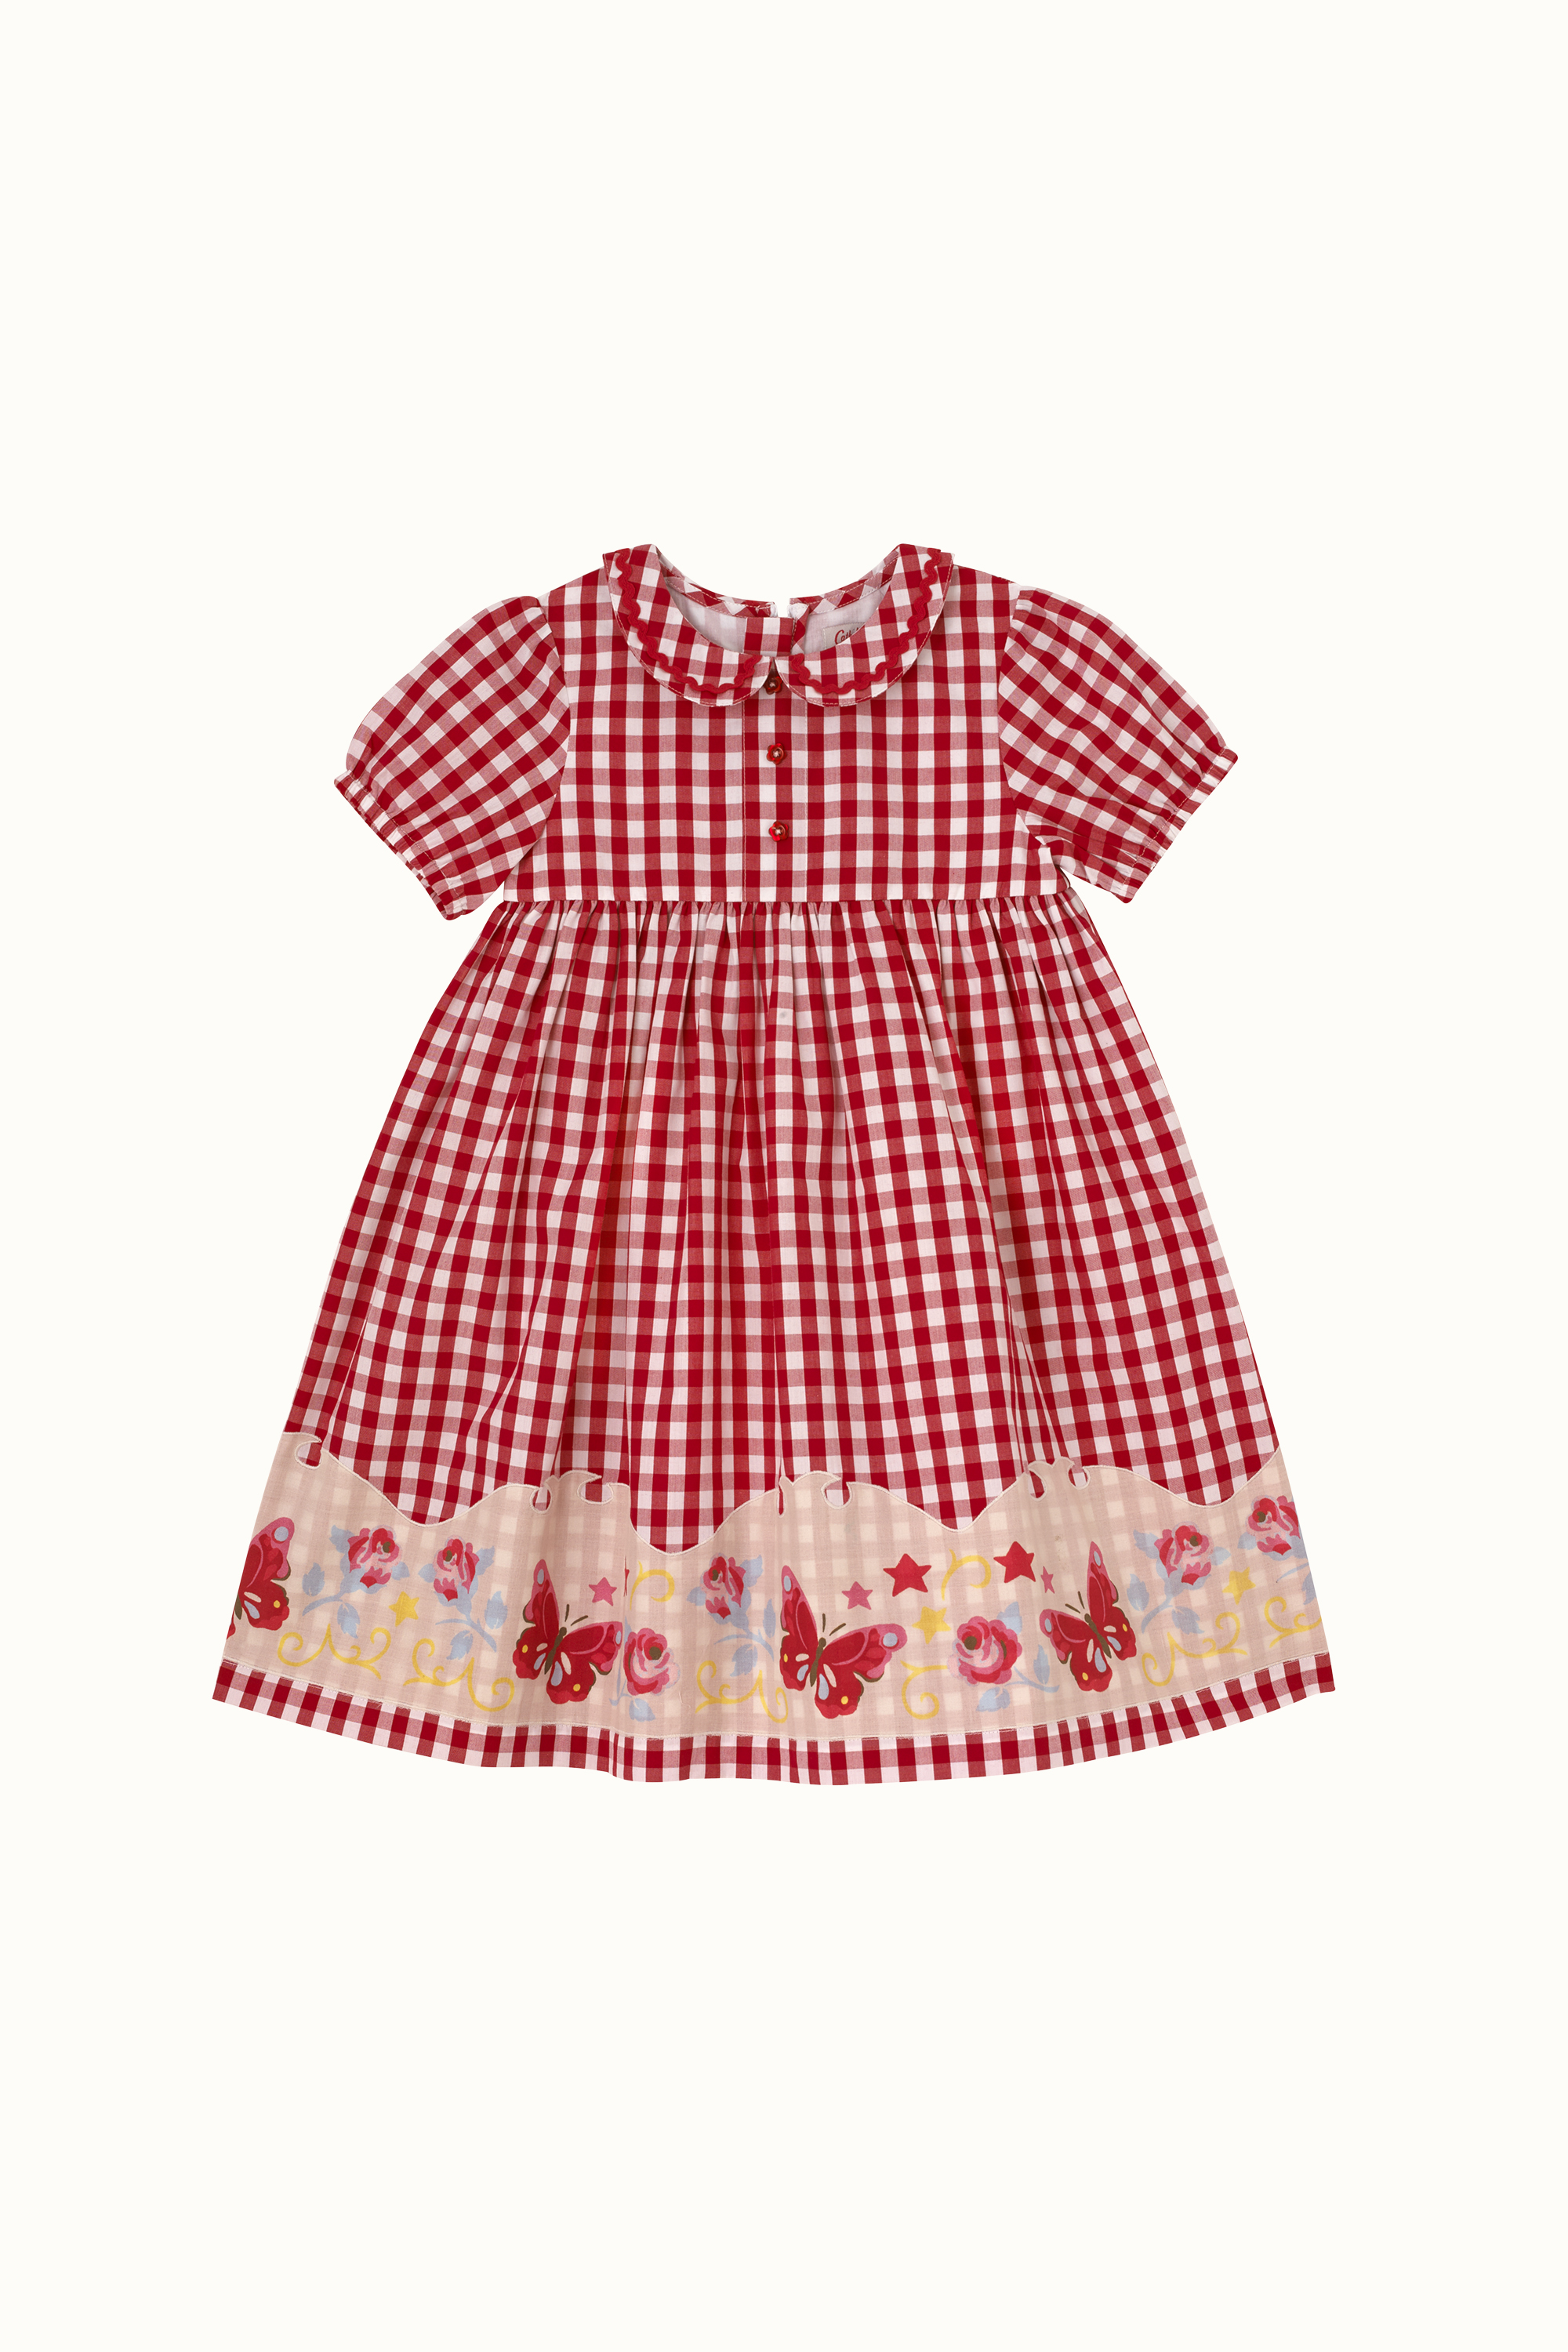 Cath Kidston Western Girl Lucy Collar Detail Dress in Red, 2-3 yr